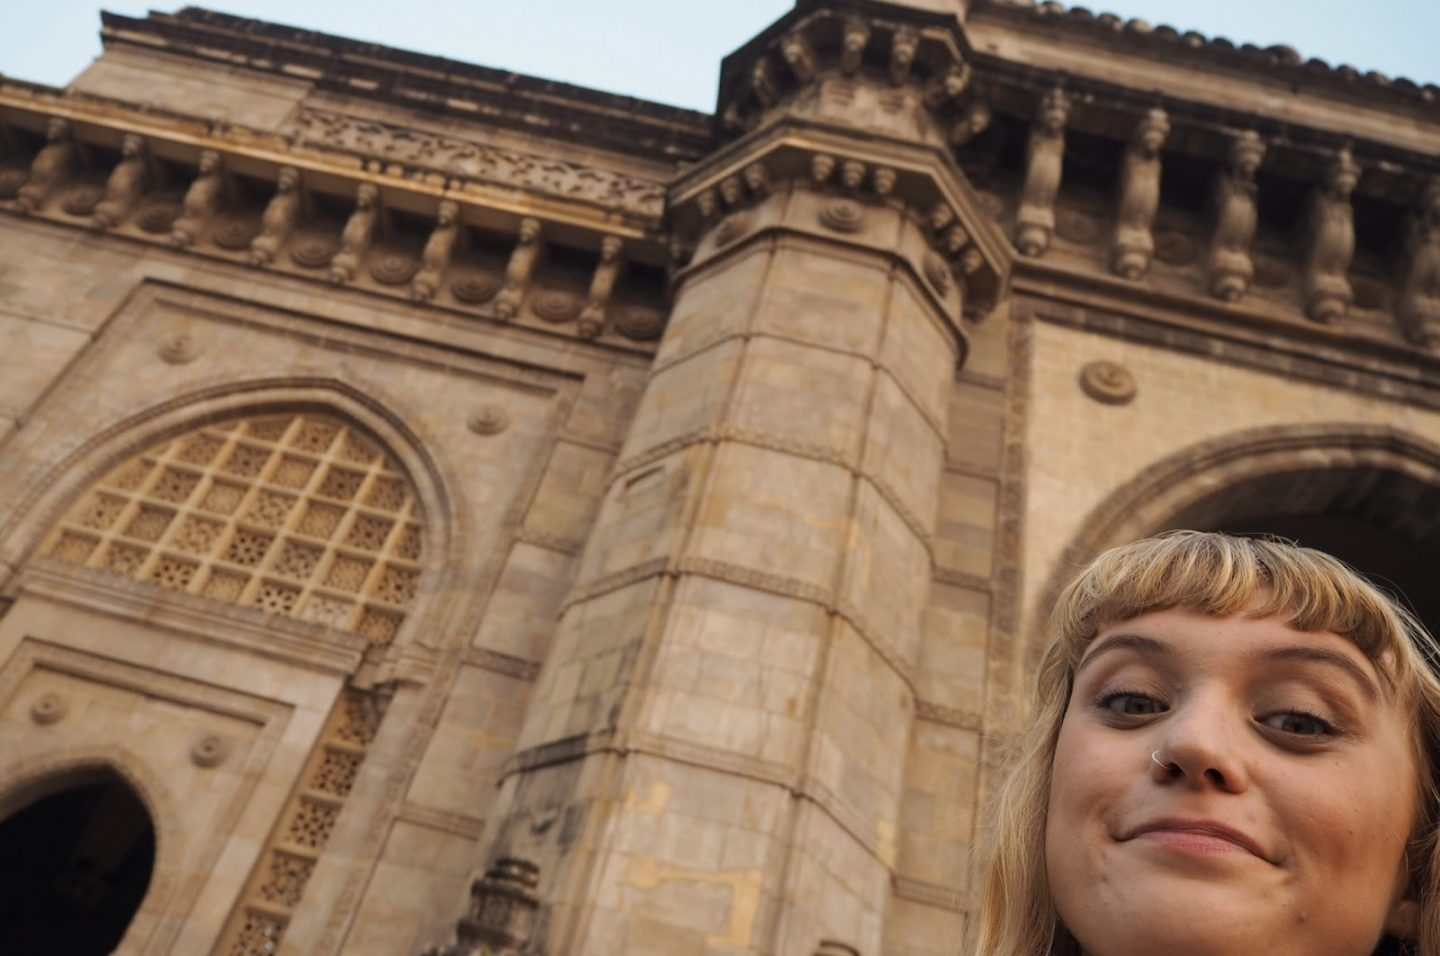 Visiting the Gateway of India at Sunrise as a solo female traveller